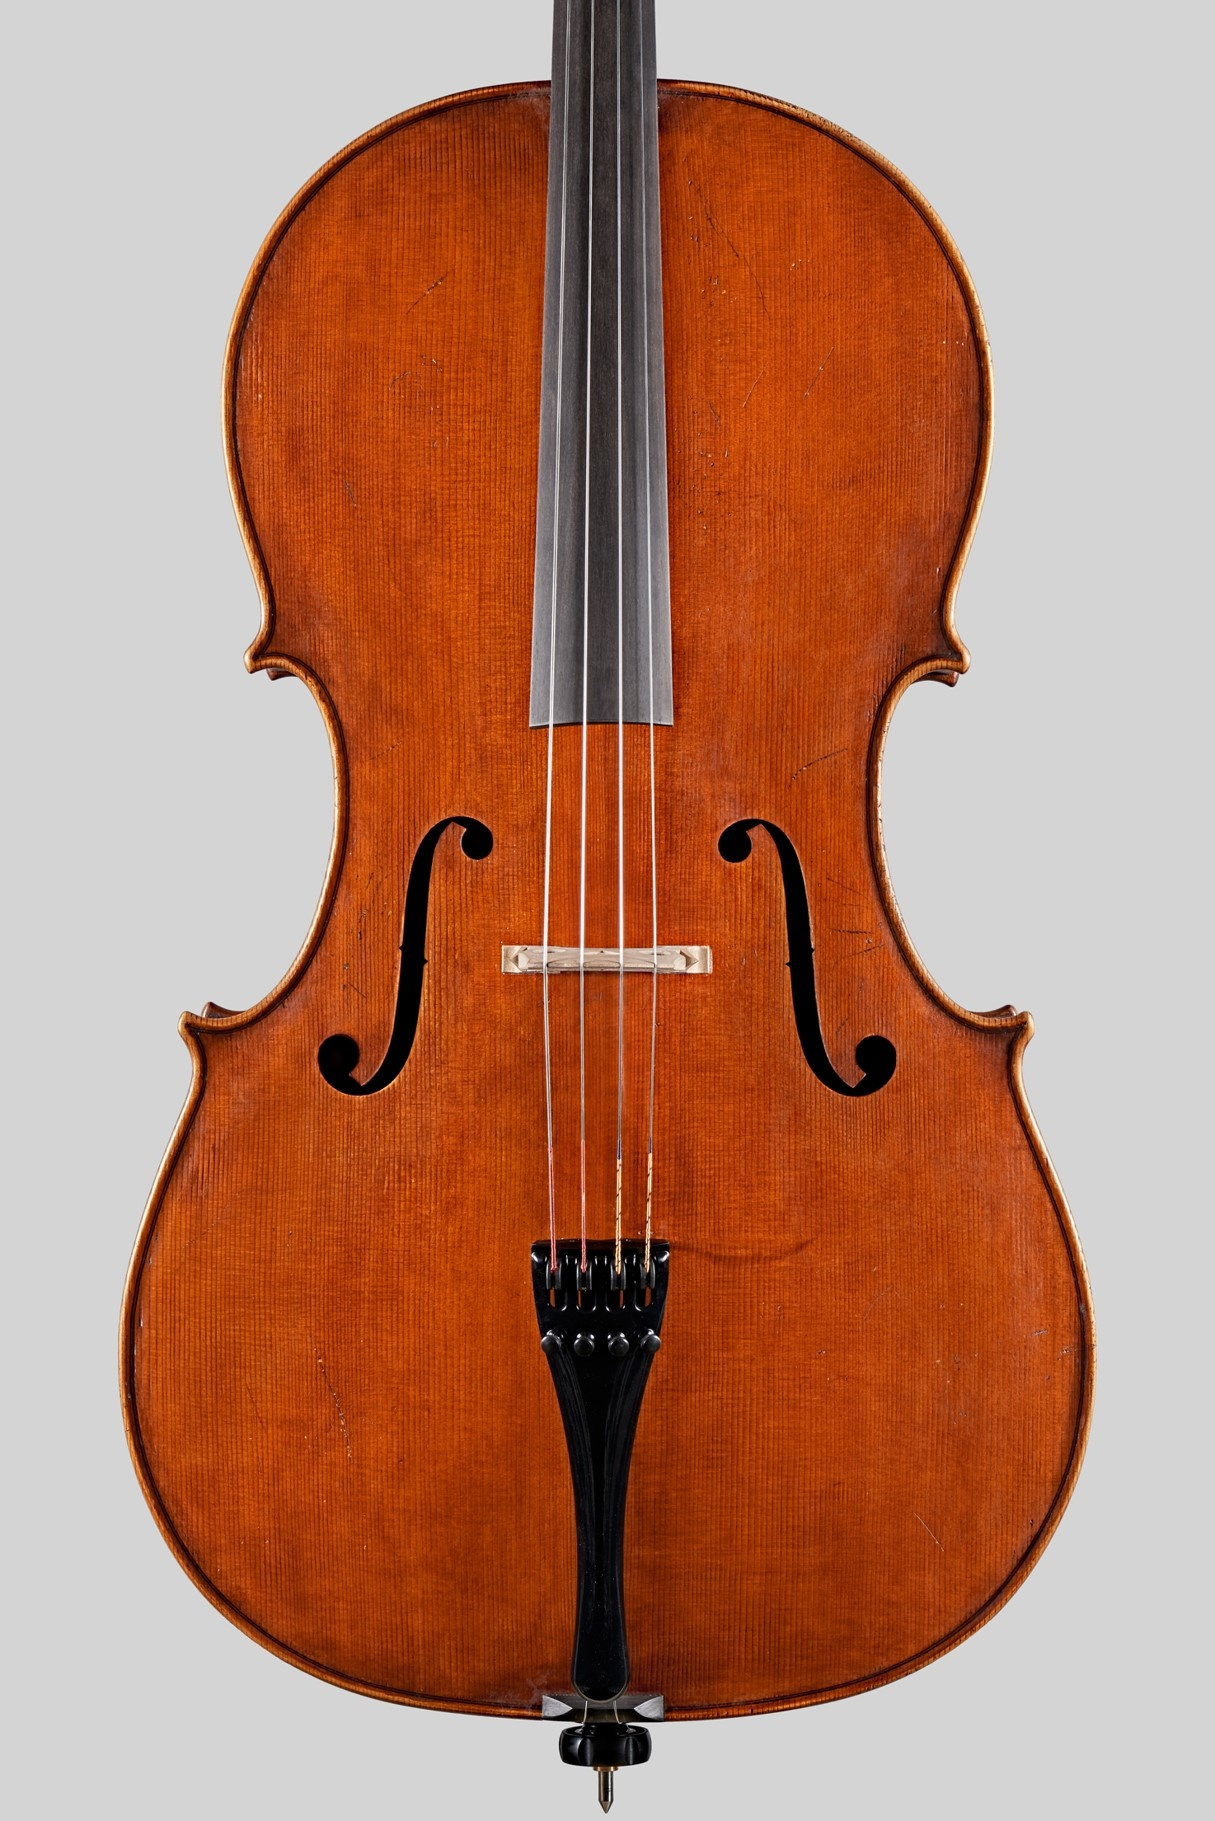 Italian Pasquale Sardone cello, Ruggeri model, 2017, Cremona, ITALY